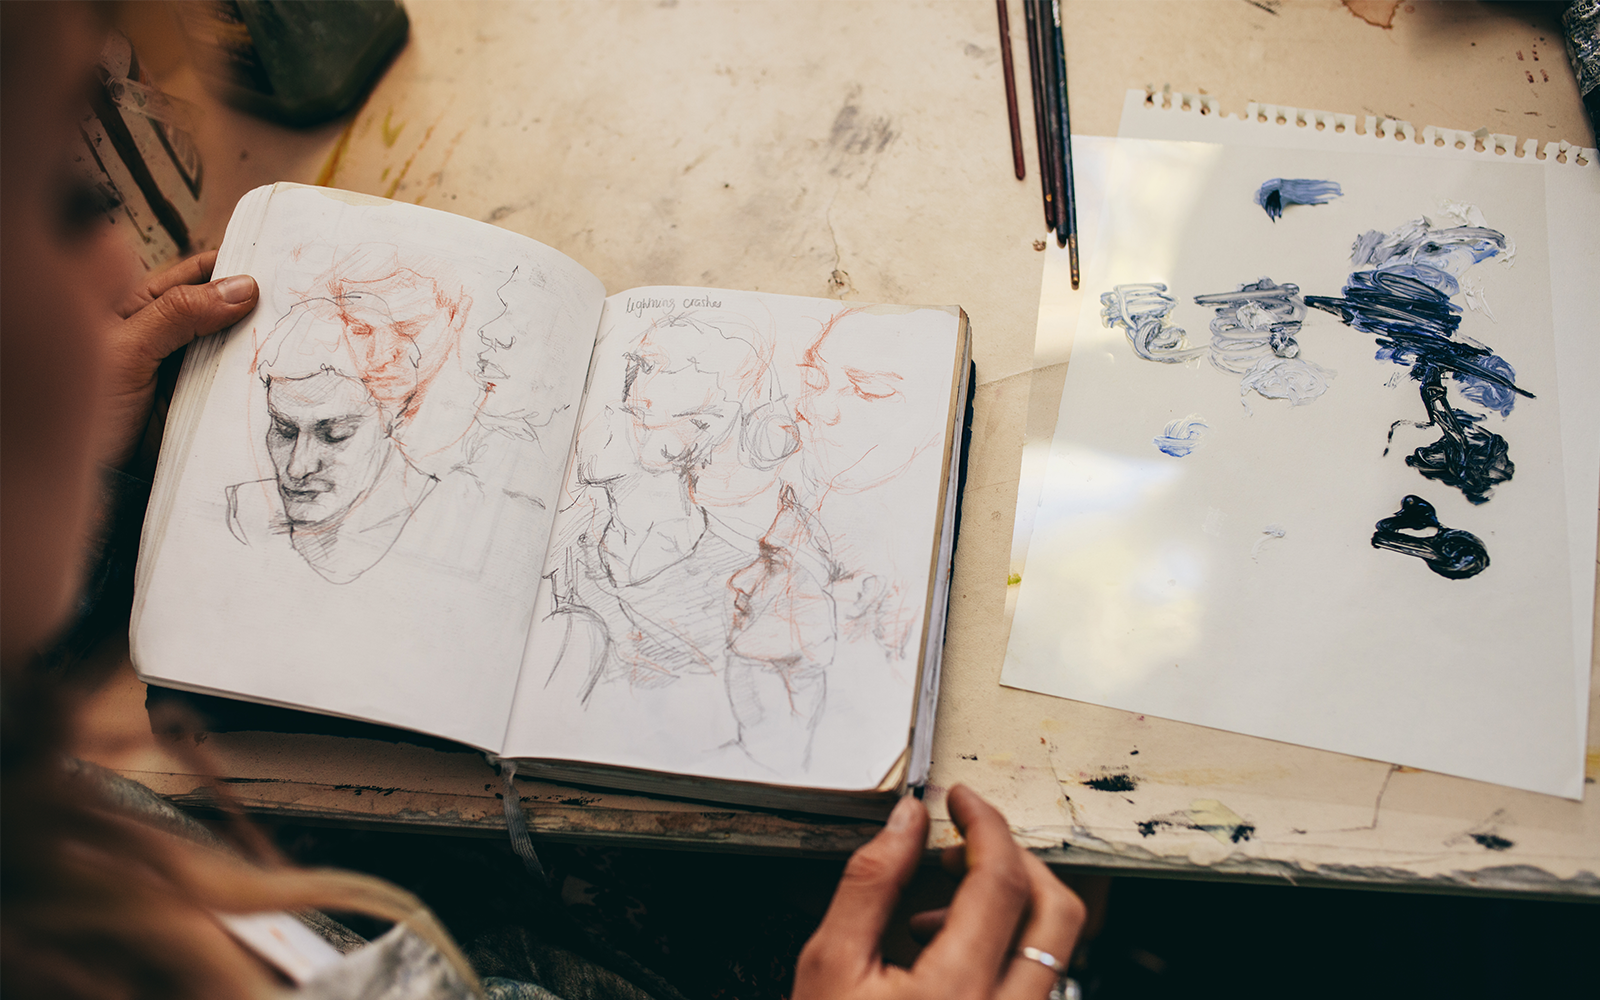 art sketchbook with faces